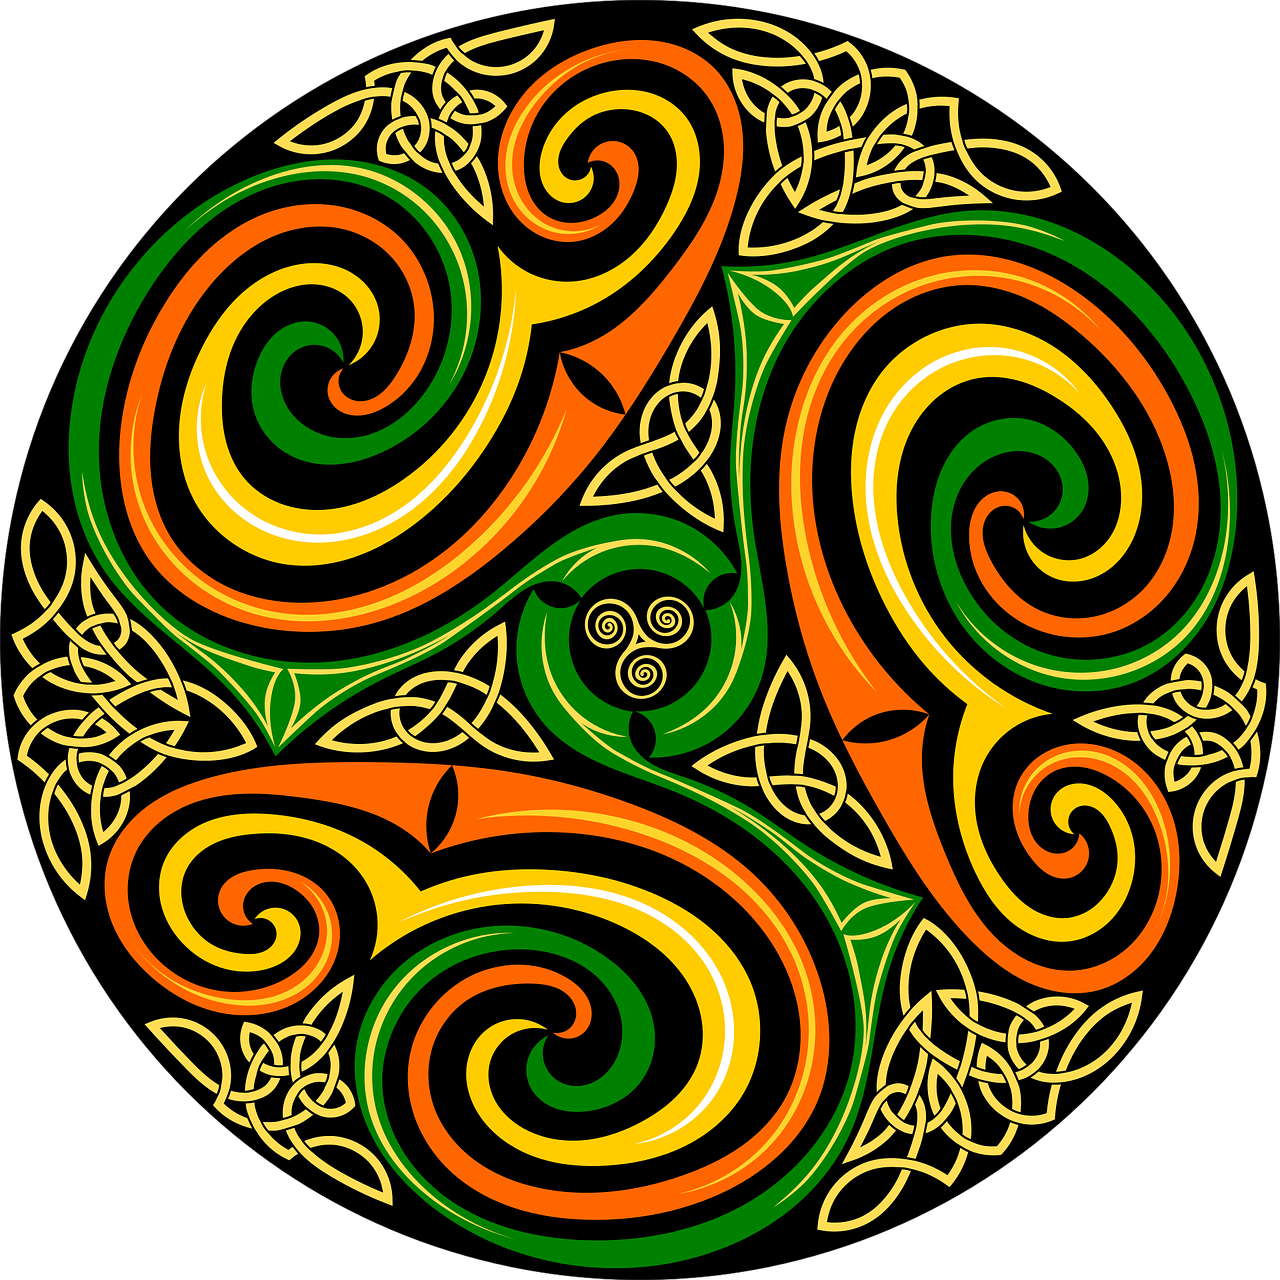 Celtic Celts Circle - Free vector graphic on Pixabay